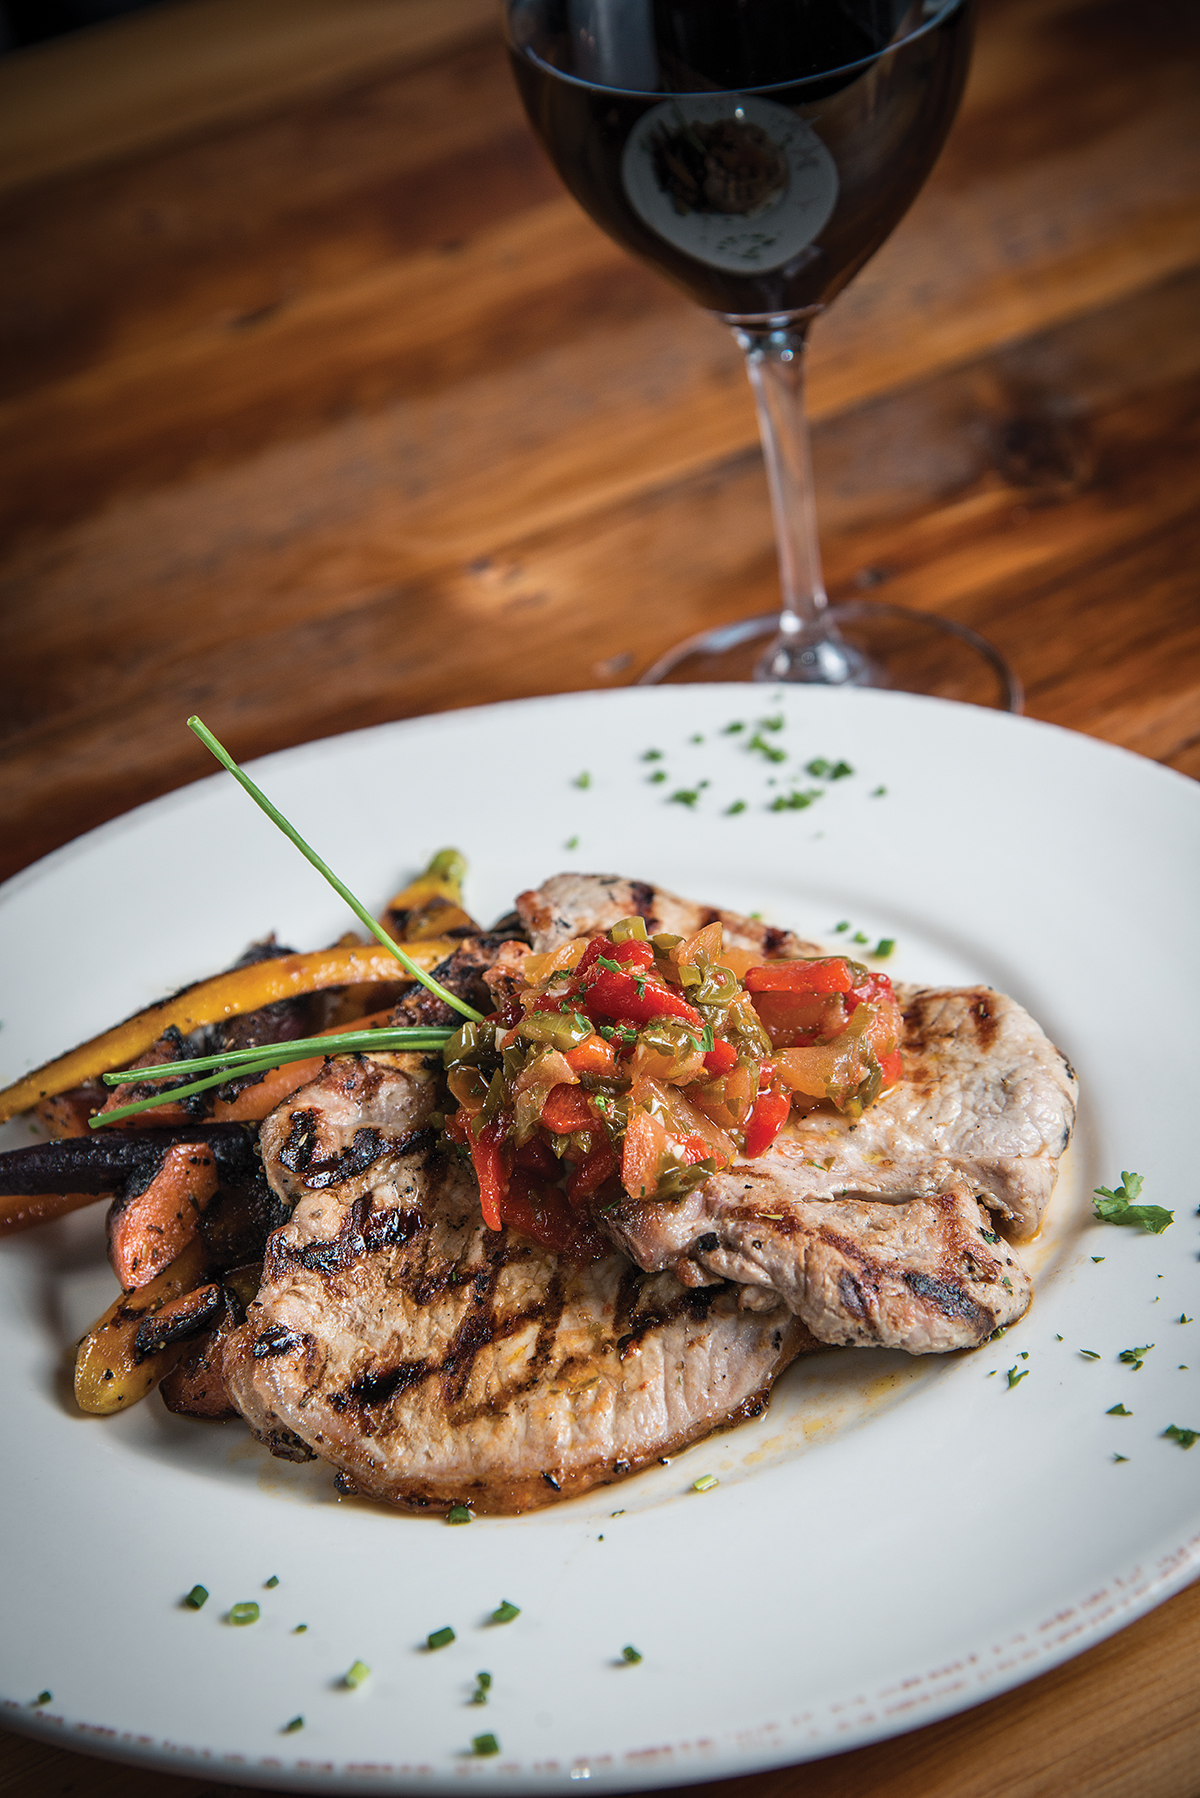 Pork chops, on the grill menu, topped with a tomato garlic reduction and accompanied by roasted vegetables